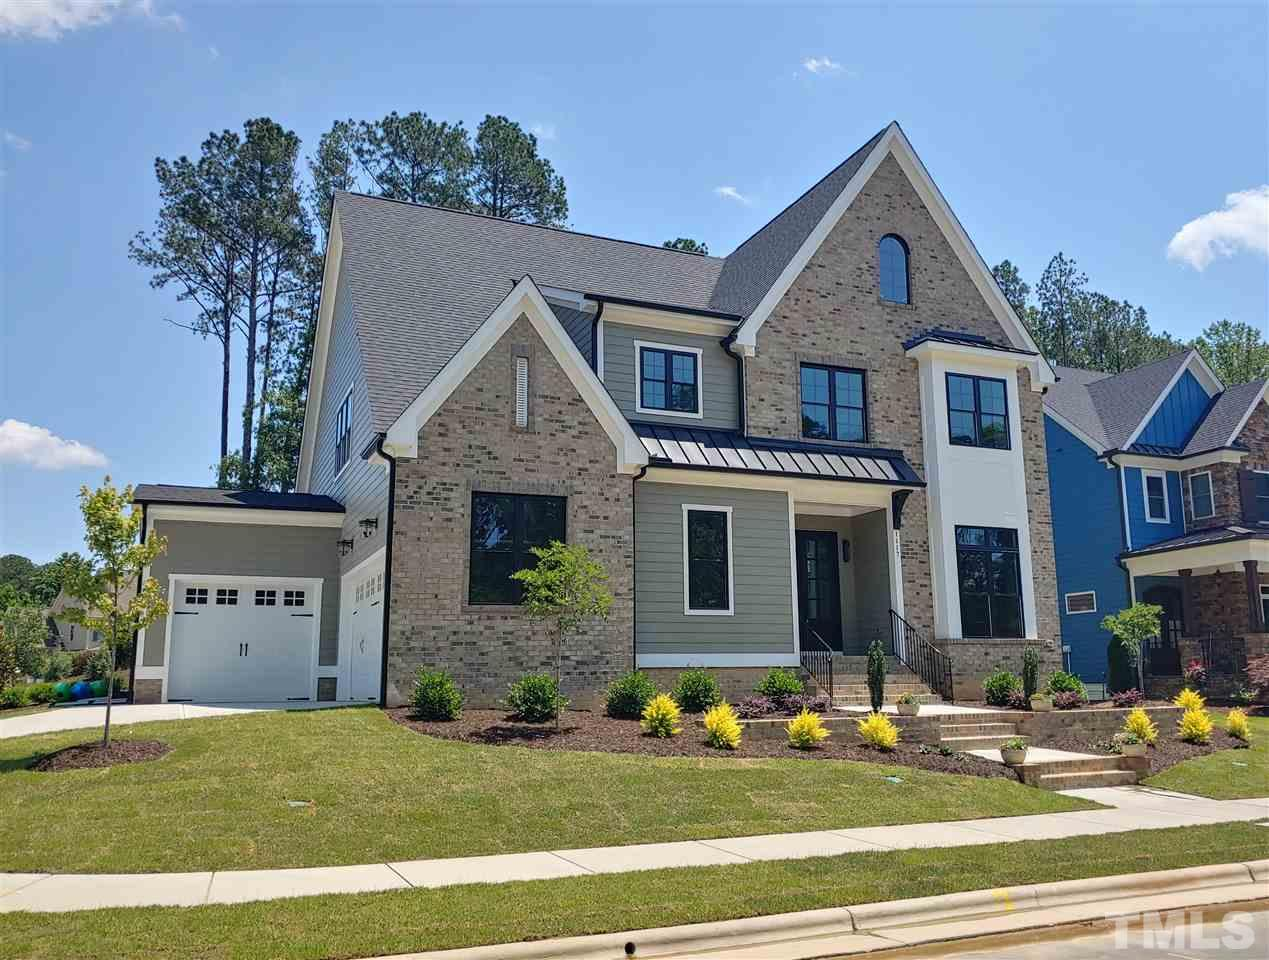 "Brick Accented Custom Home w/1st Flr Master & 3 Car Garage! Study w/French Drs! Formal Dining w/Impressive Butler Pantry! Fam Rm w/Builtins & FP! Lrg Back Porch w/Huge Sliding Drs! Gourmet Kit w/Jenn-Air SS Appls, 2 Ovens, 48"" Builtin Frig,  Quartz Tops, Cabinets to Ceiling, & Lrg Pantry! 16x17 Master w/Free Standing Tub! Laundry Access from Master Closet! Hardwds on 1st! 4 Bdrms & Bonus Up w/Lrg WICs & Baths! Wet Bar & Hardwds in Bonus Rm! 3 Storage Rms! Tankless H2O! Sec. Pre Wire! Relaxing Patio! Wow!"